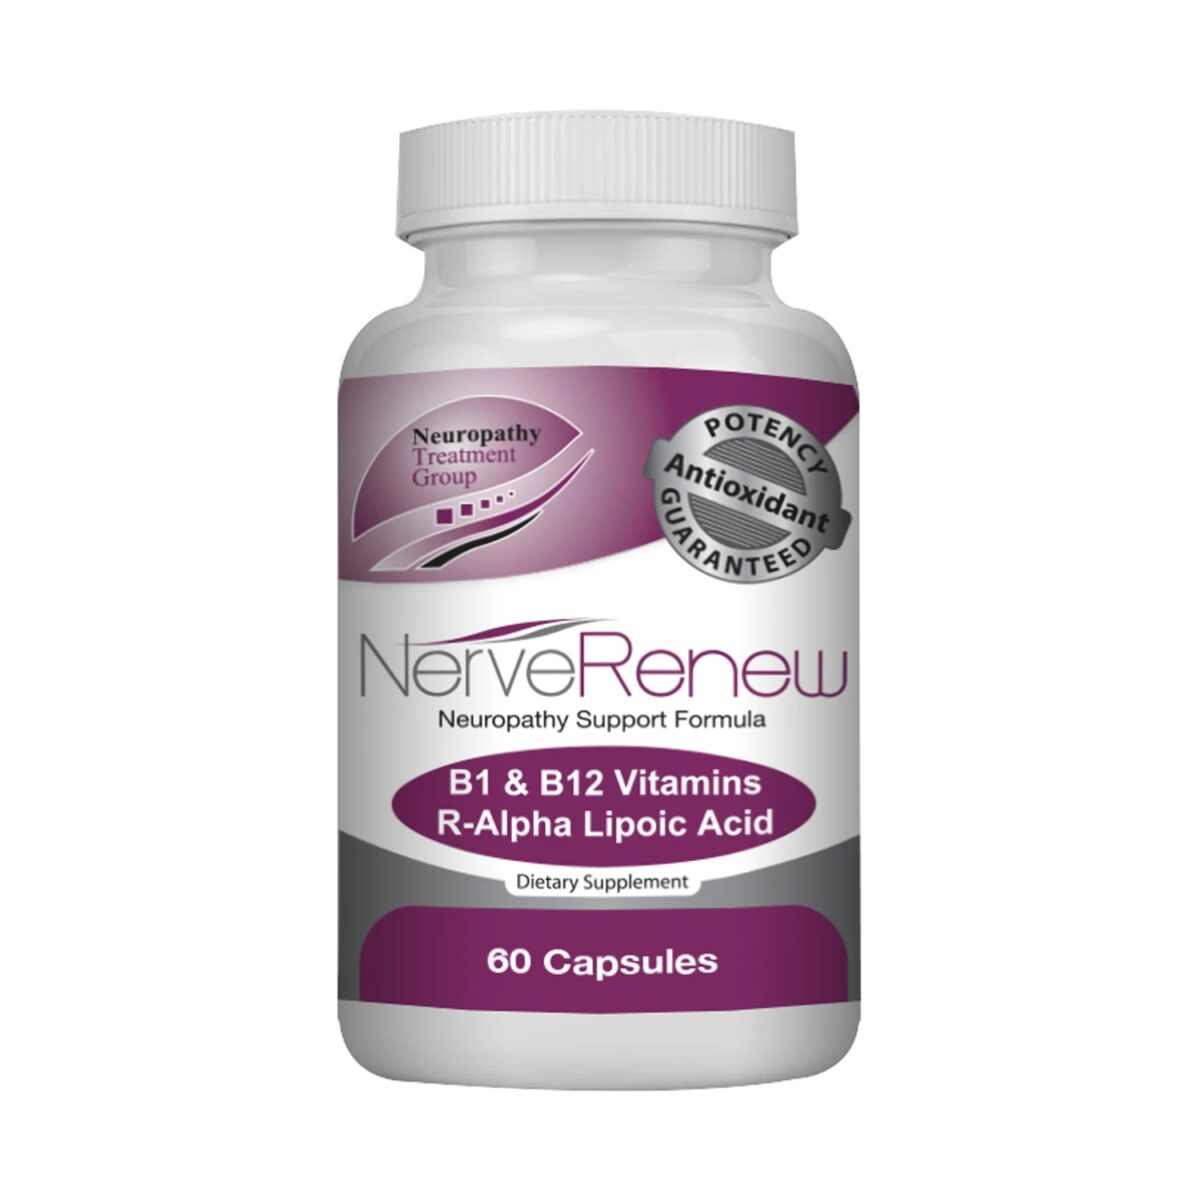 Nerve Renew – A Supplement True To Its Name